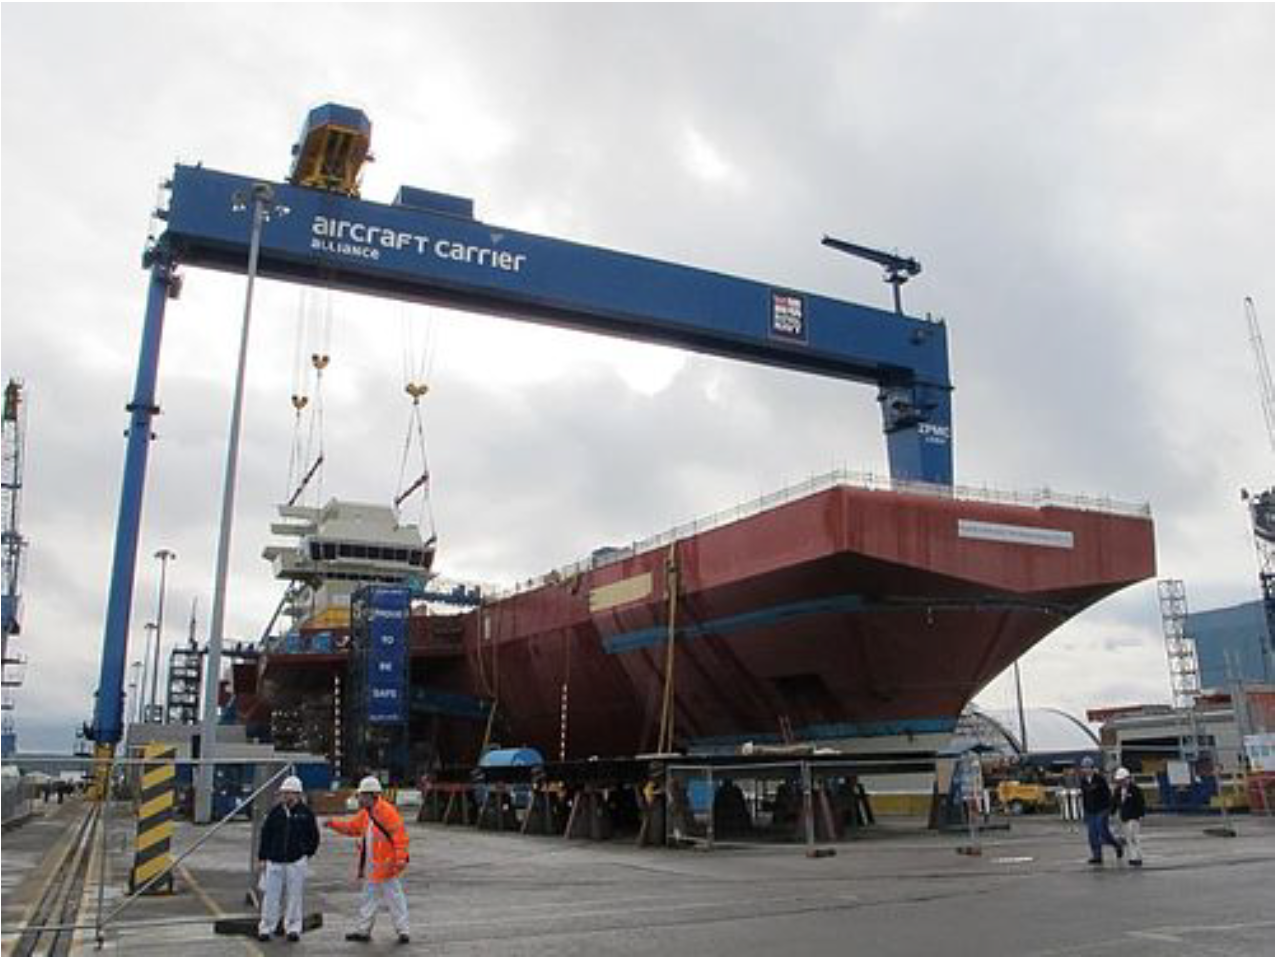 The Goliath Gantry Crane constructing the QueenElizabeth aircraft carrier -